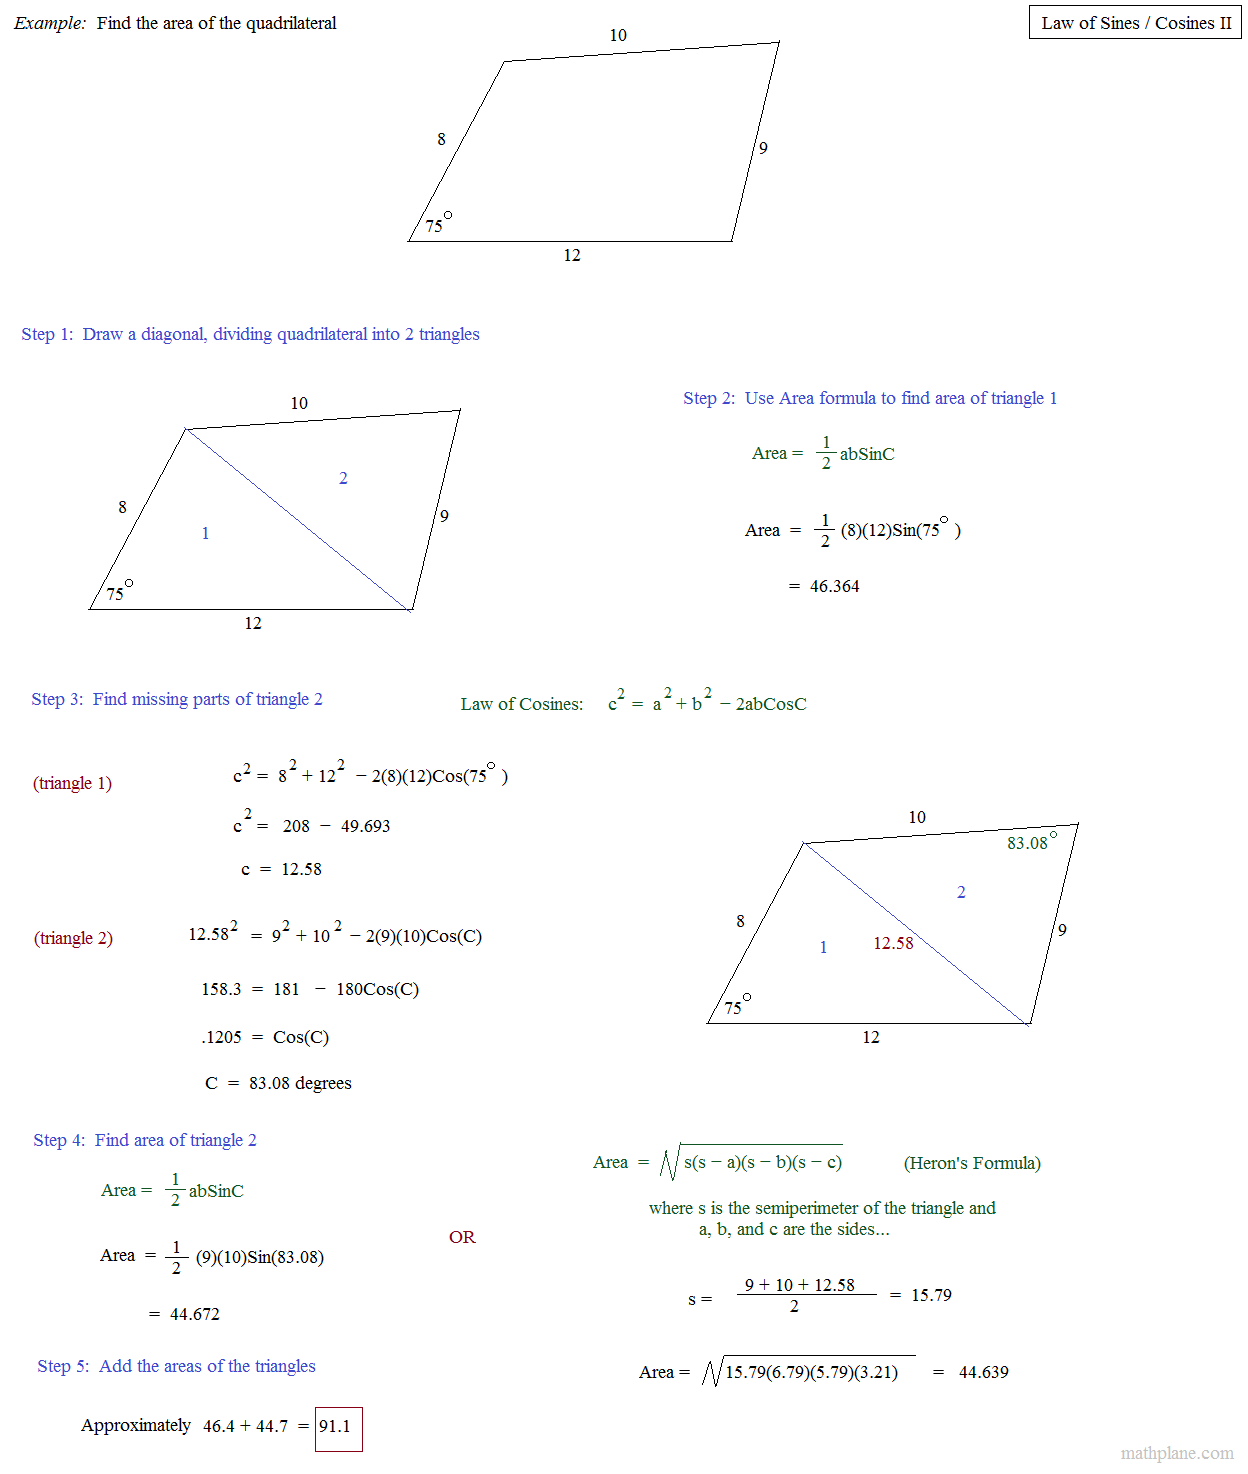 Worksheets Law Of Sines And Cosines Worksheet math plane law of sines and cosines ii quadrilateral example